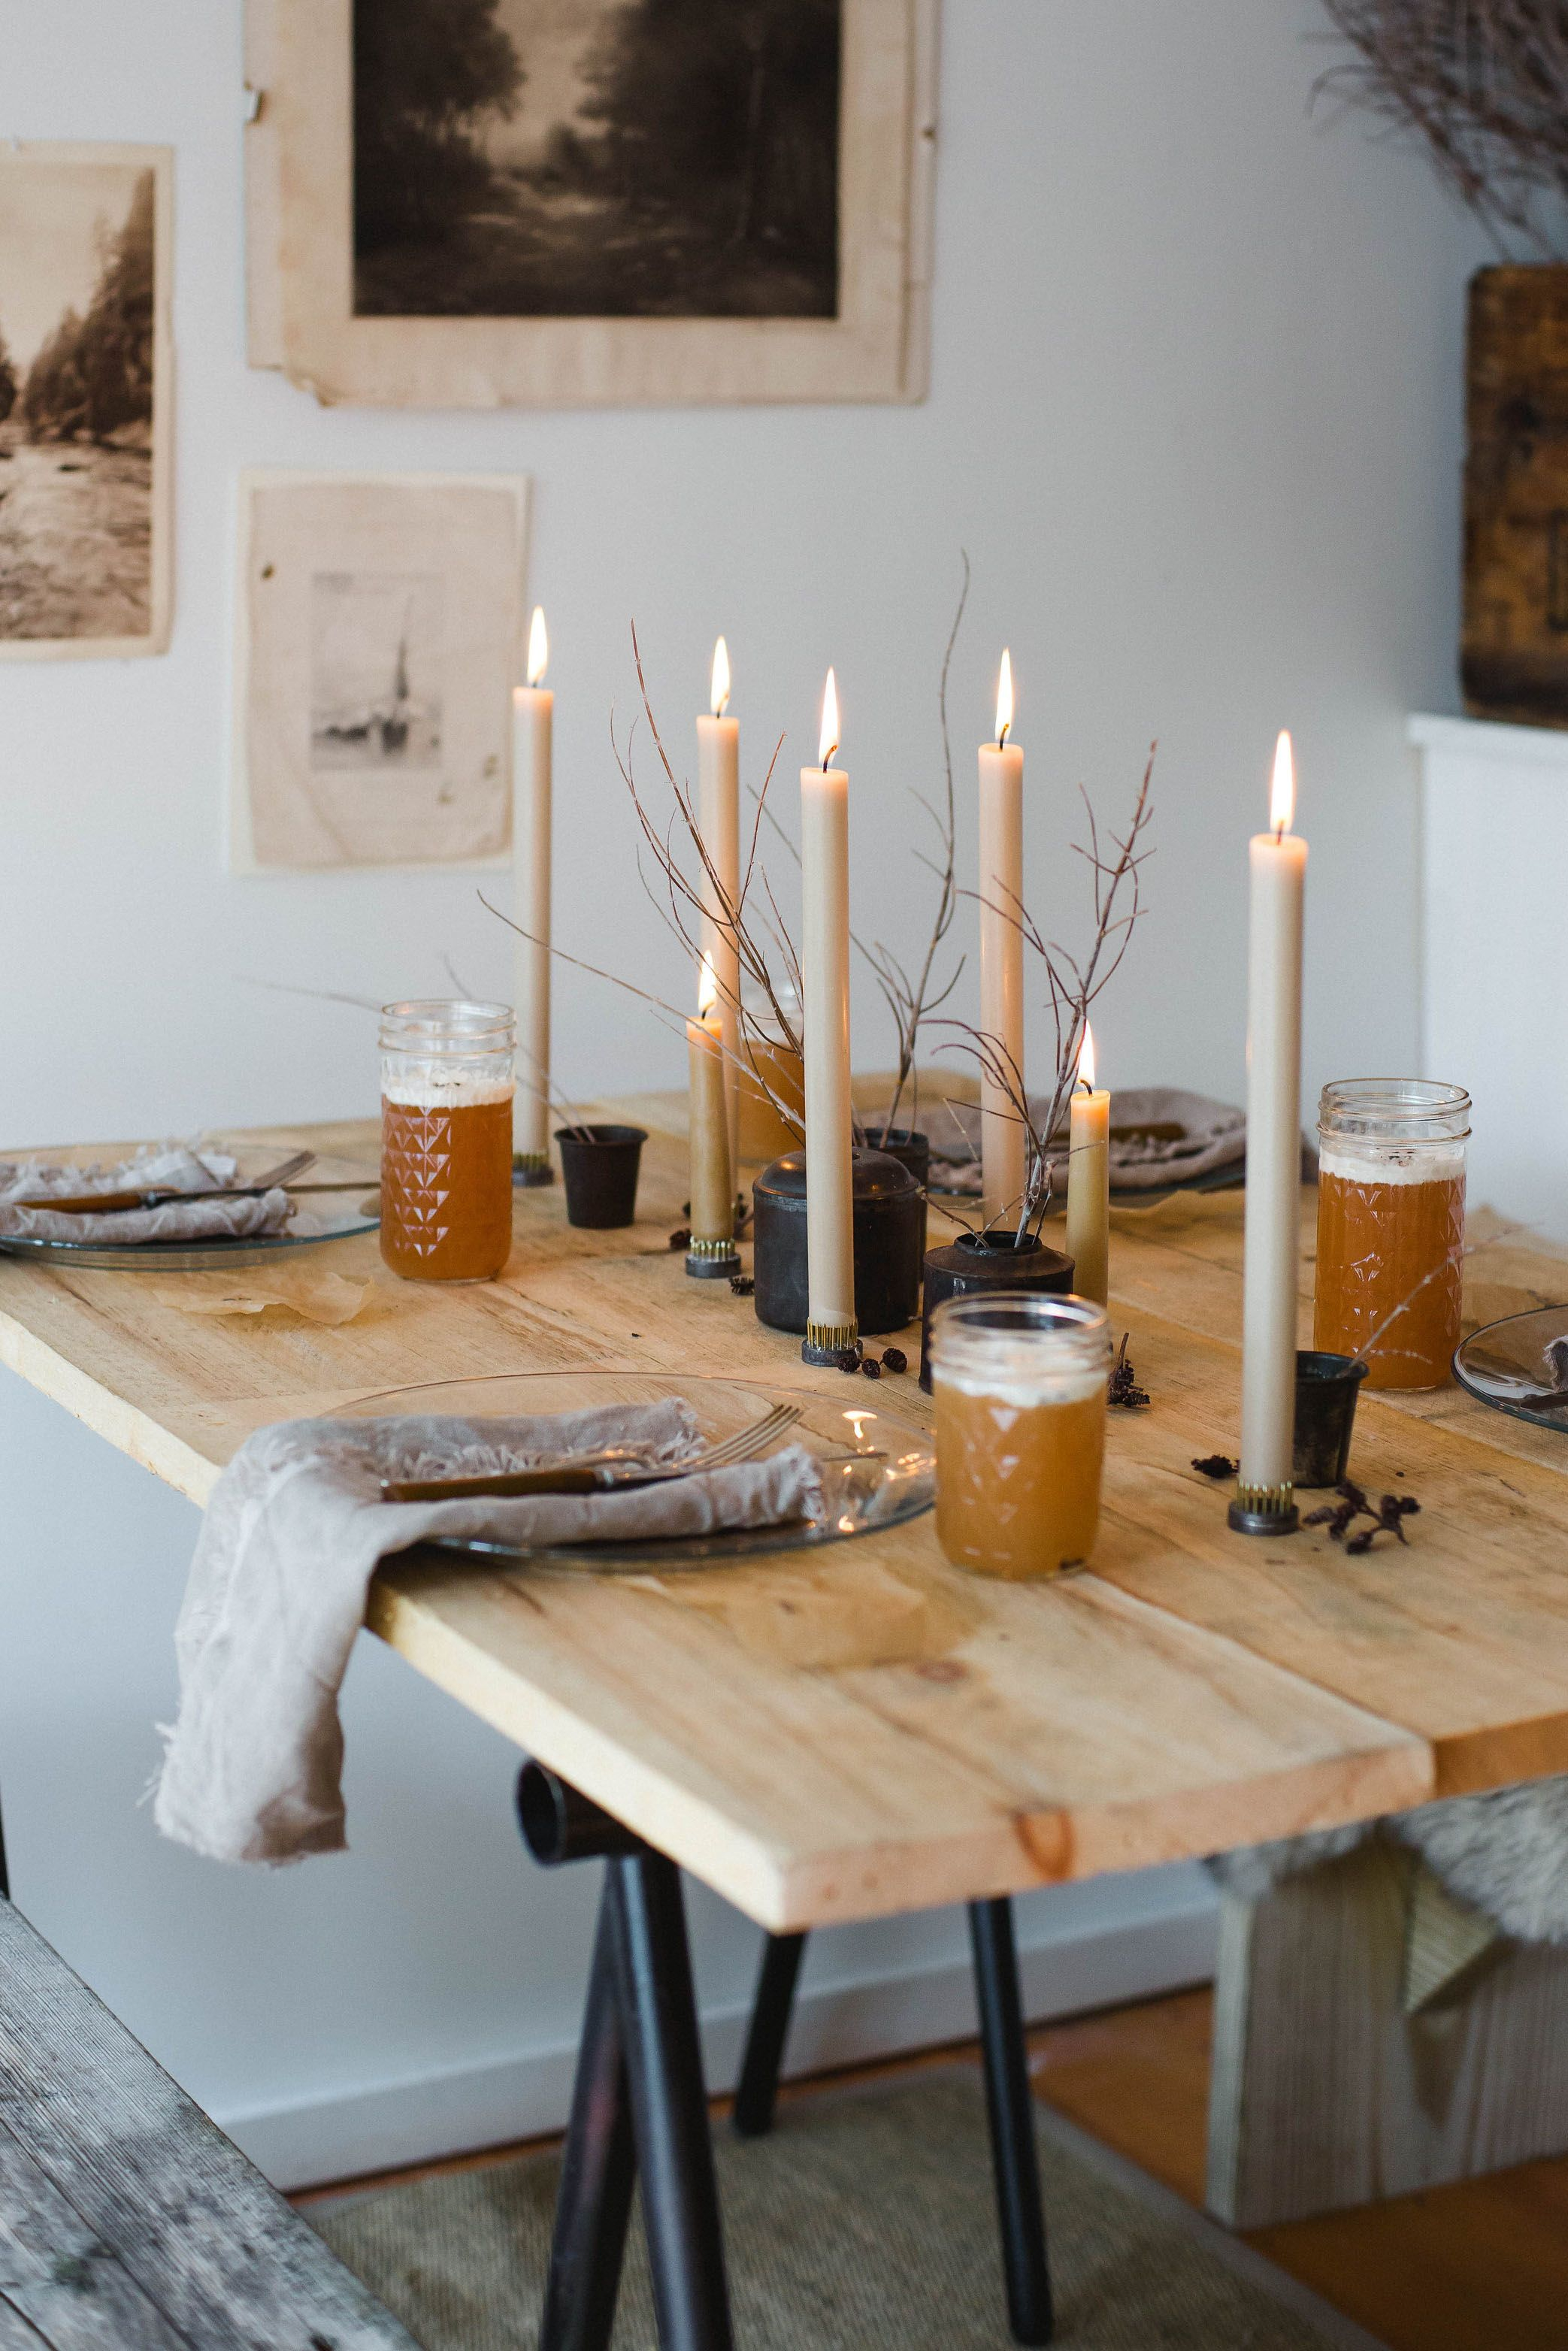 Check out the Art of blog post about Danielle McGee of Good Look'n to read more about her creative process and how she used our tapers in her styling.  photography: Ester Mathieu #falldecorations #falldecor #fallinspiration #fallvibes #fallcandles #falldecor #hyggehome #hygge #hyggeliving #hyggedecor #tablescapeideas